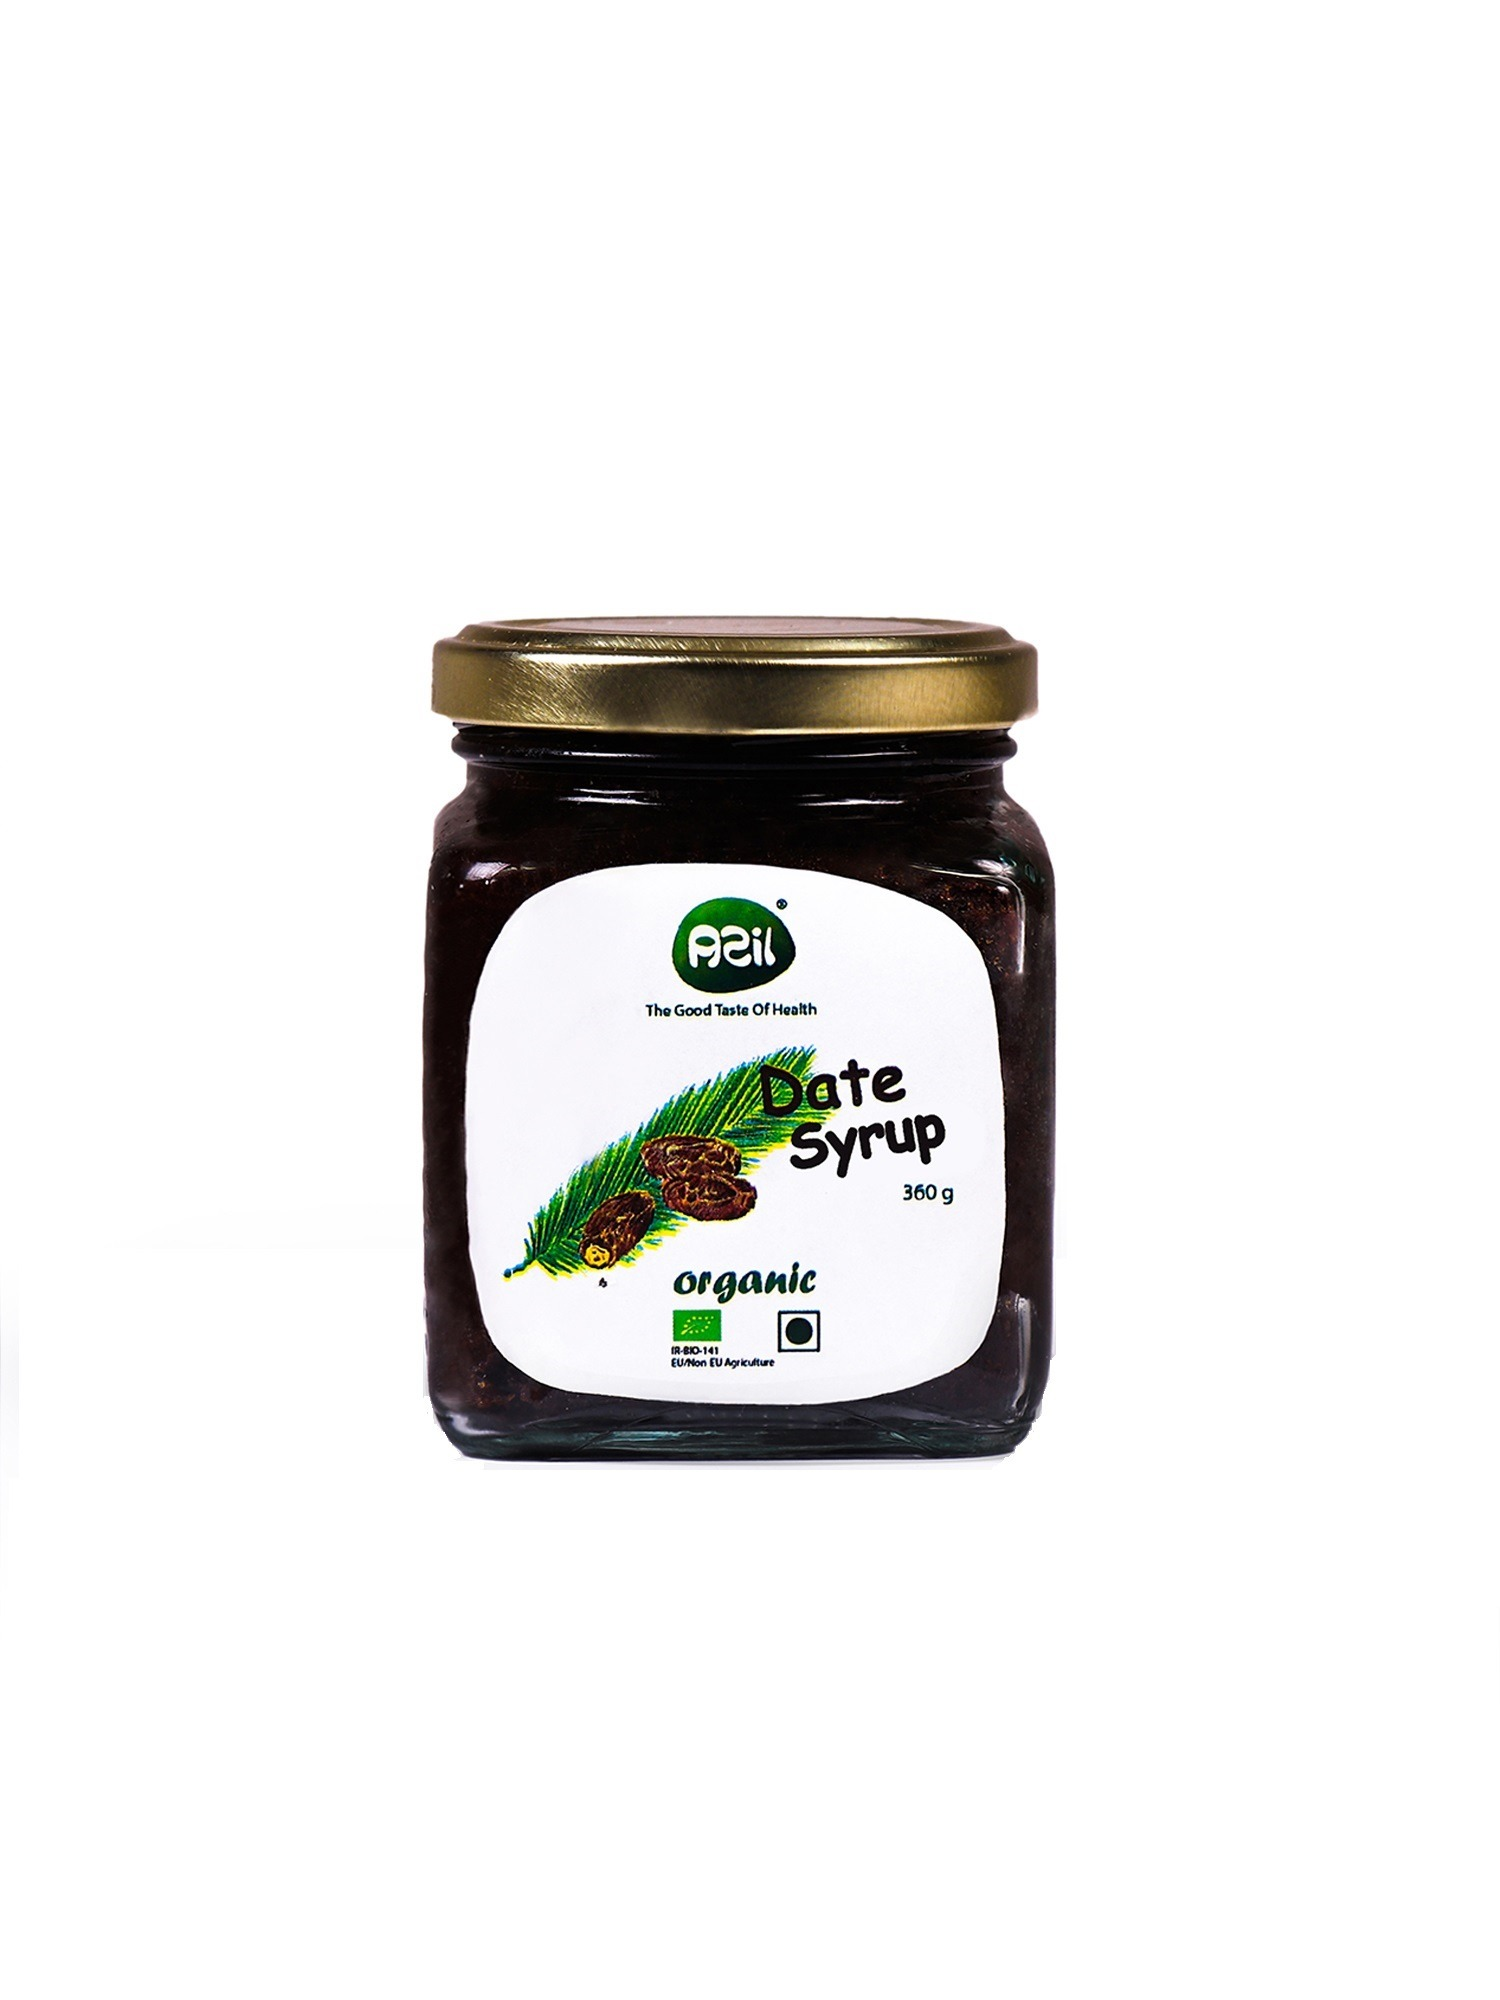 date syrup packed picture - Azil Organic Date Syrup